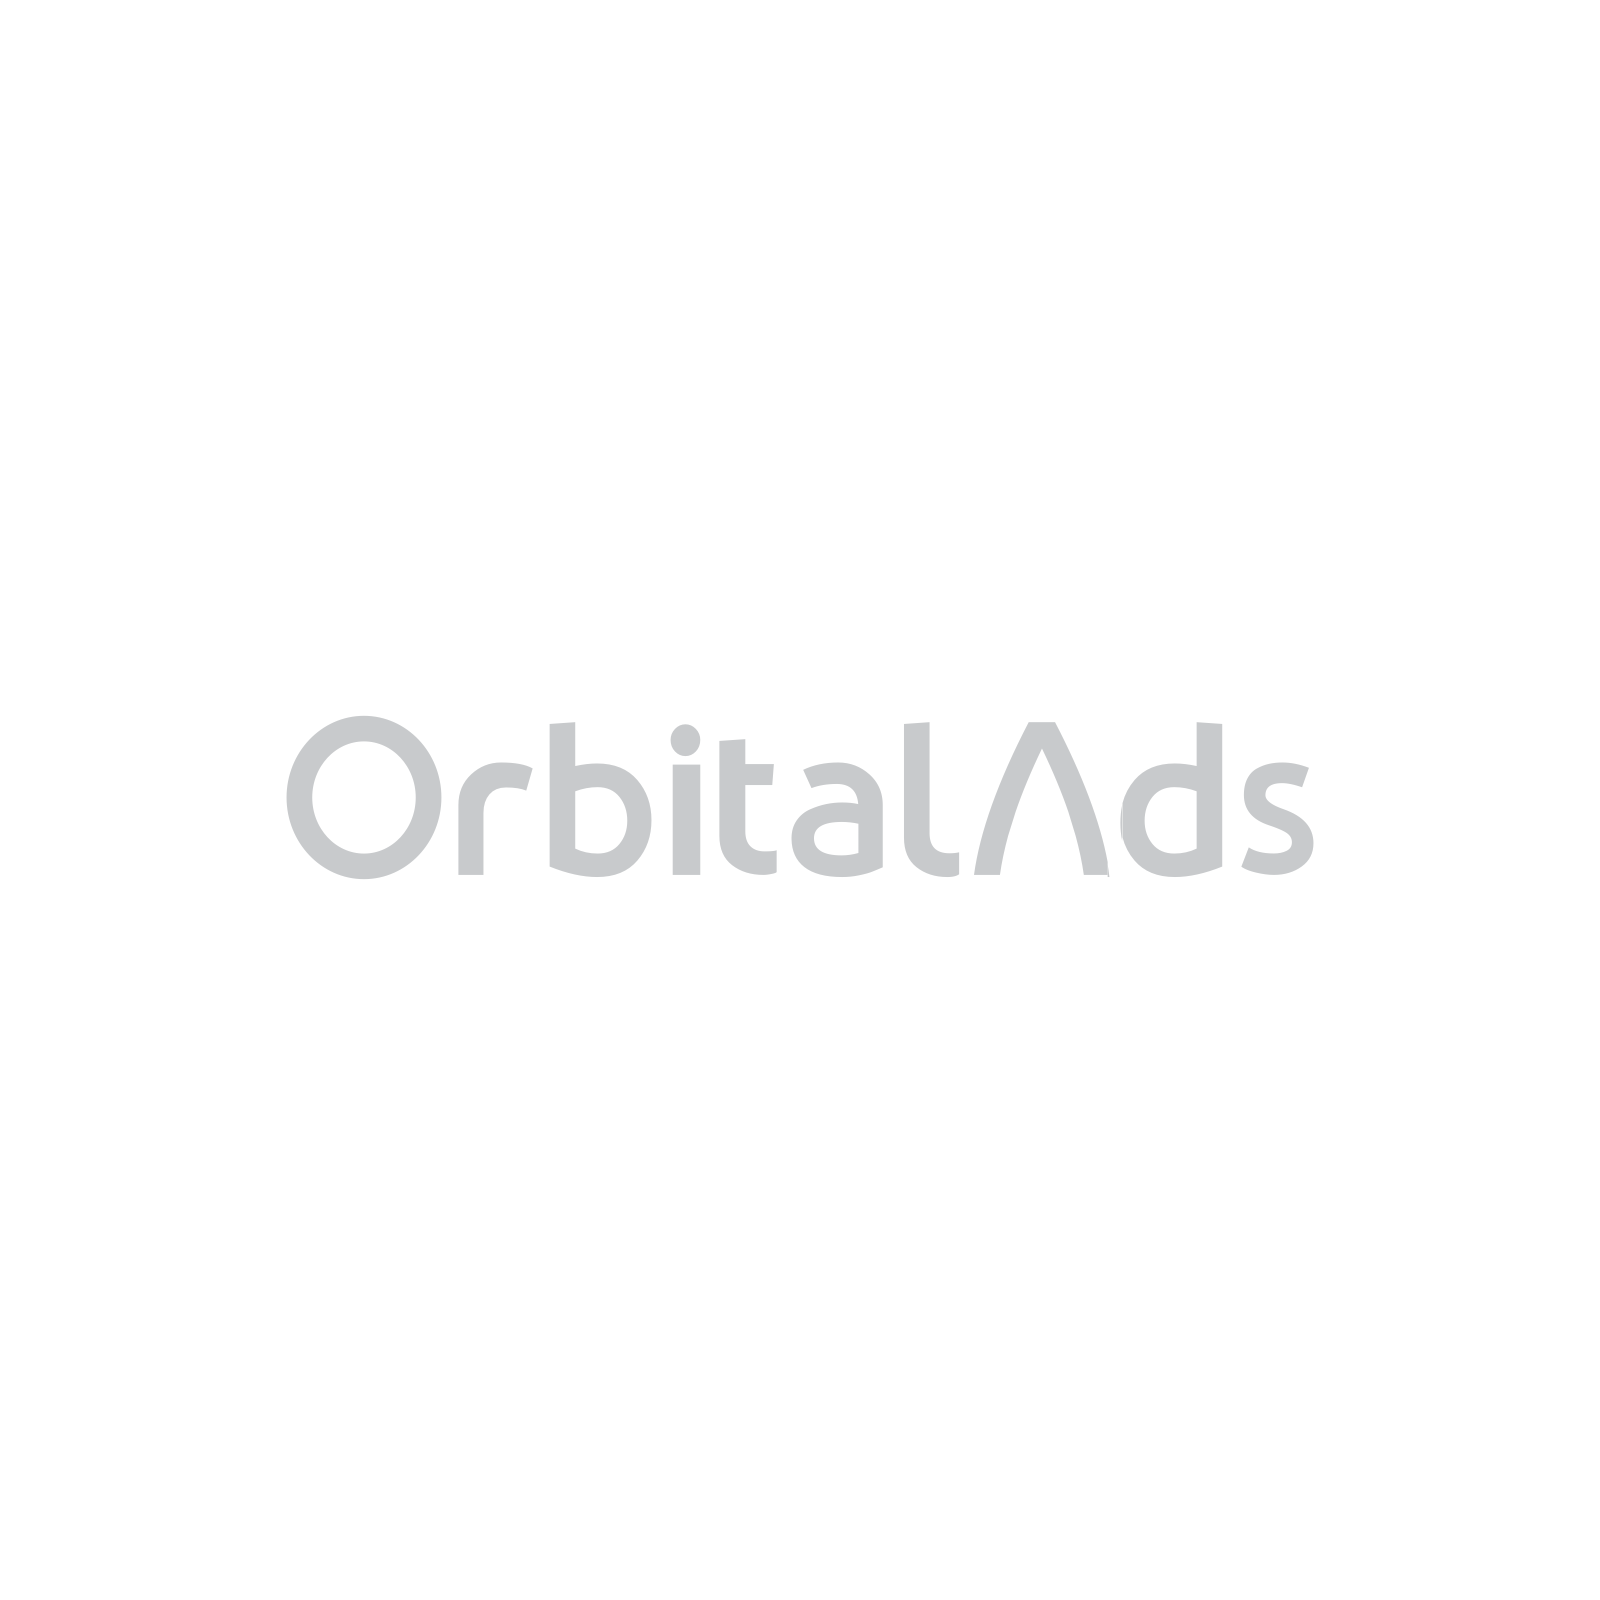 Copy of OrbitalAds Logo